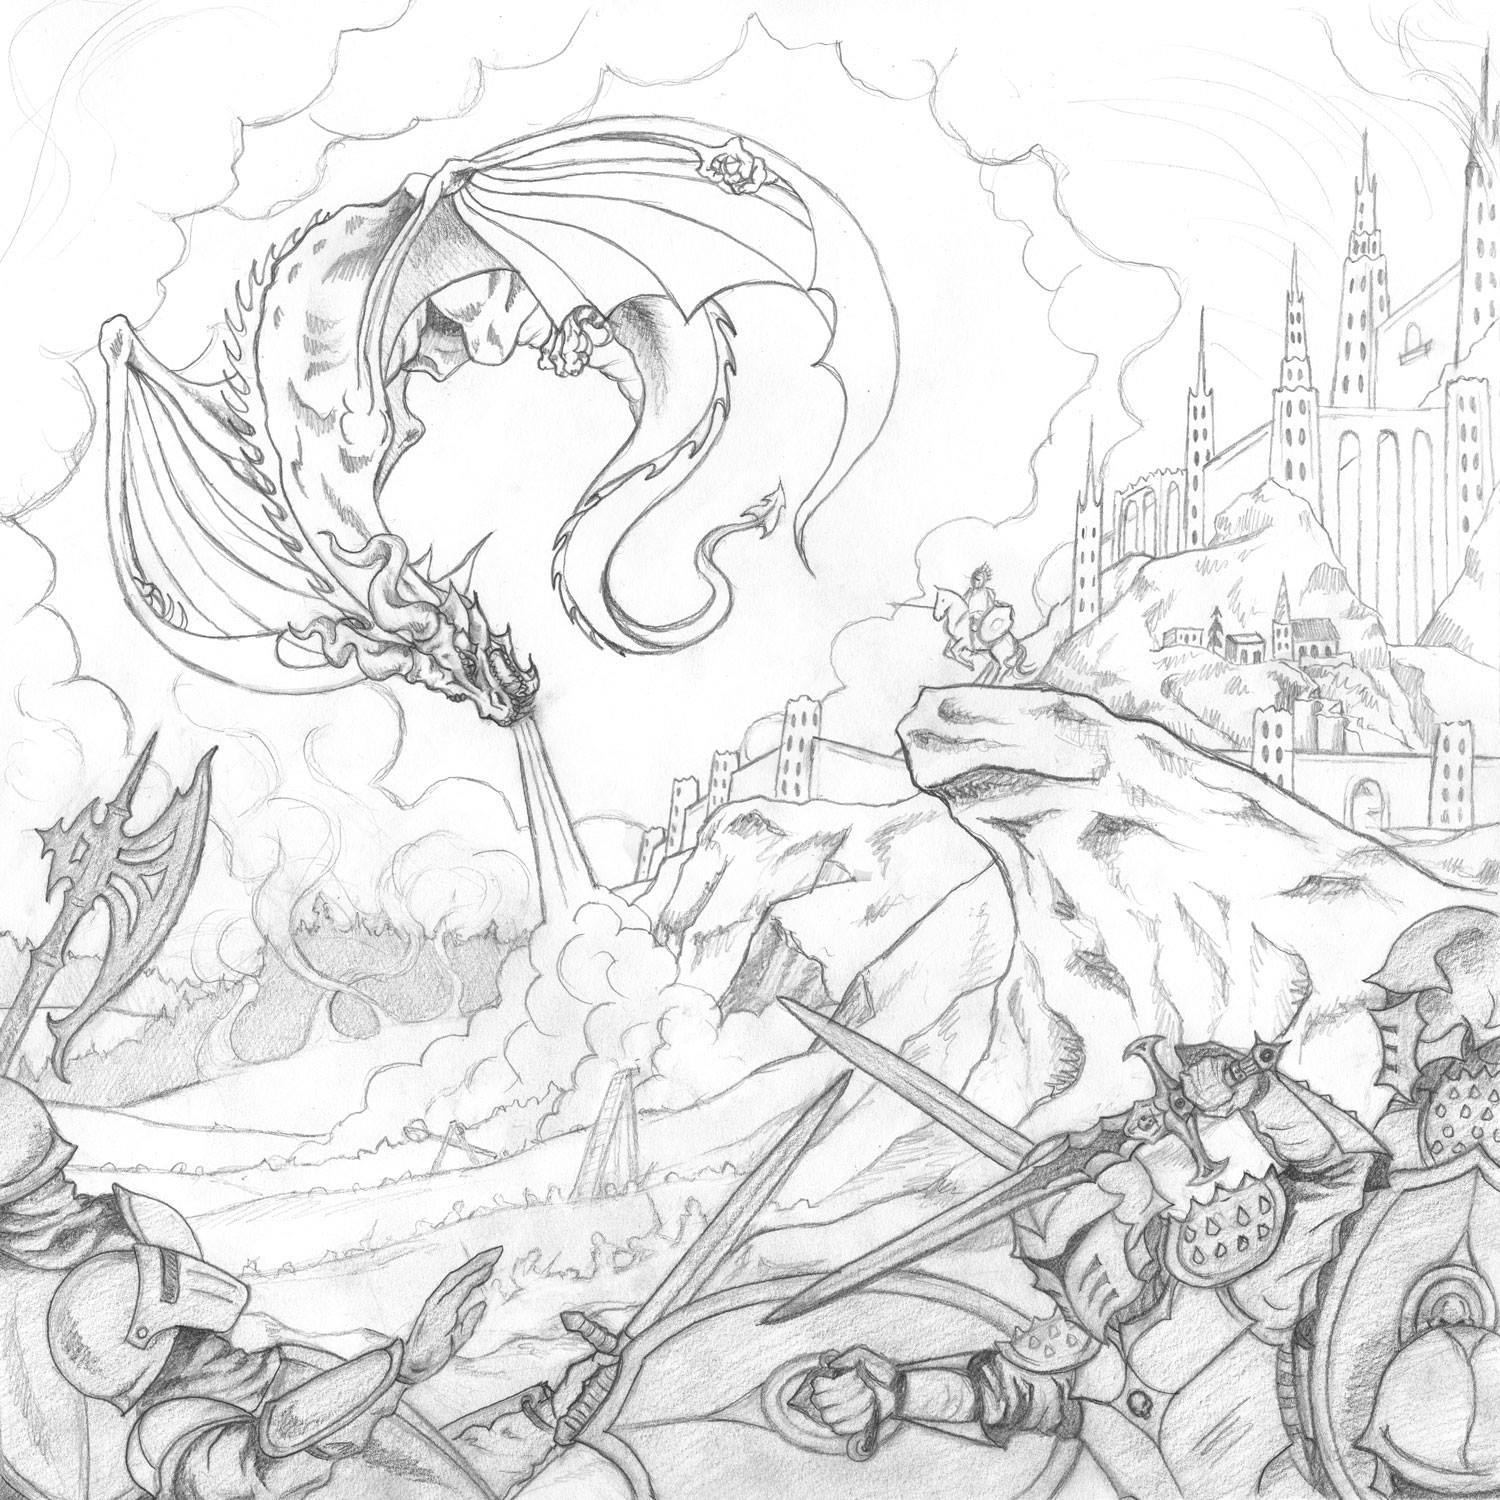 High Command - Cultic Album Cover Initial Sketch